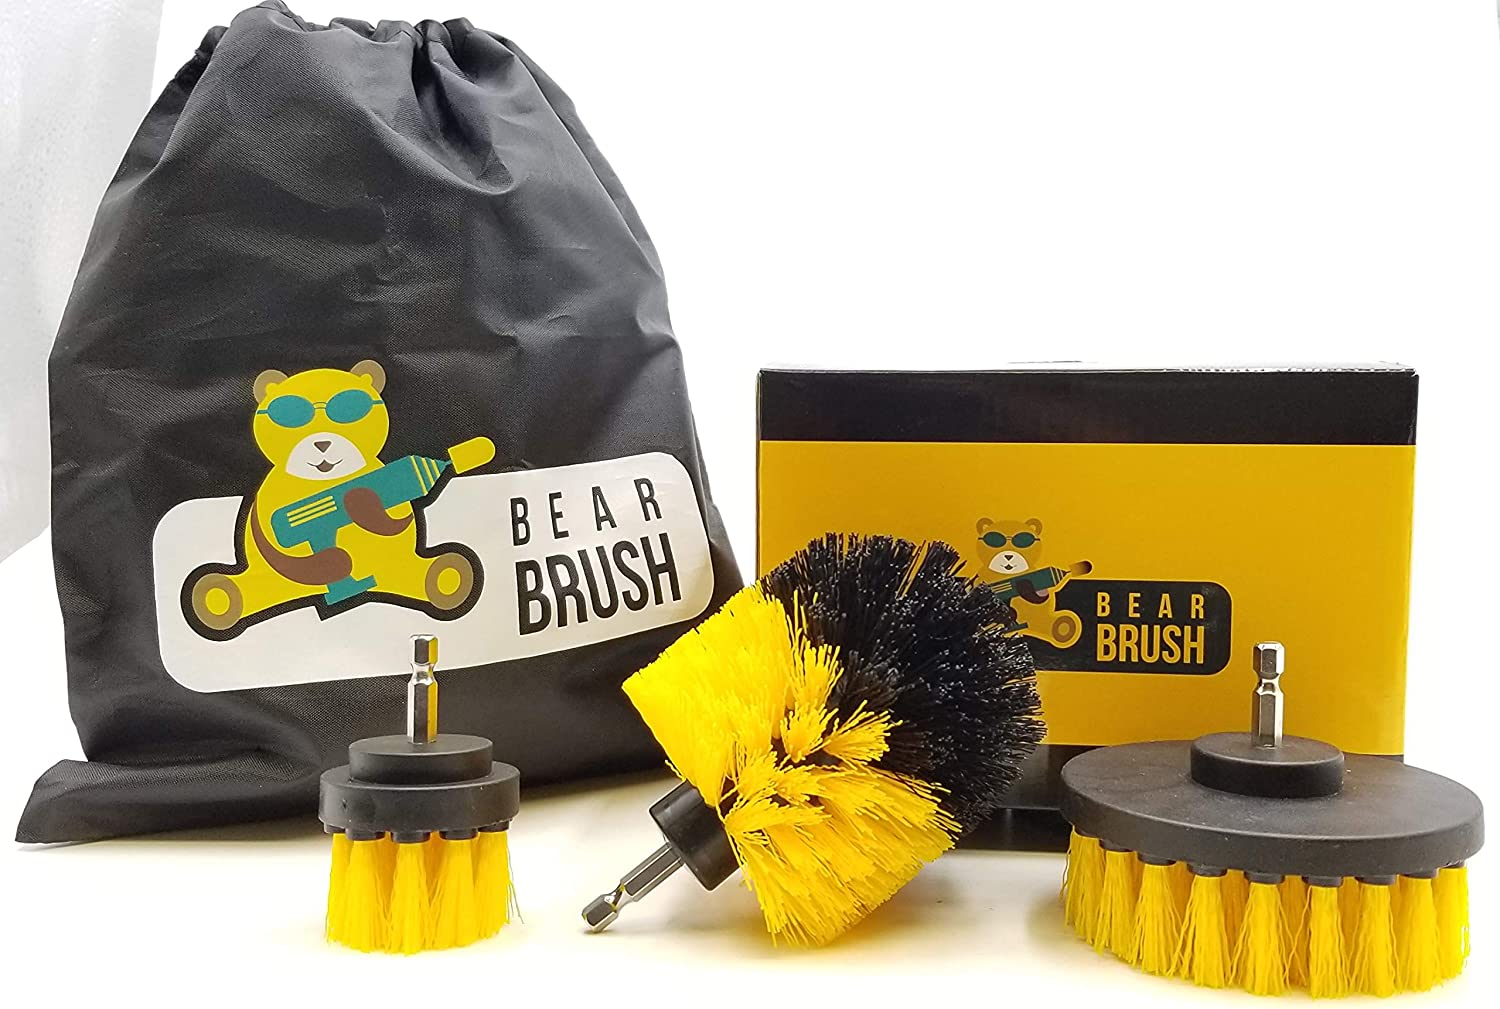 Bear Brush Drill Attachment Power Scrubber Cleaning Set of 3. All Purpose Drill Attachment - Cleaning Made Easy and Effective for Kitchen, Bathroom, Tub, Tile, Driveway, Carpet, Grout and Much More.